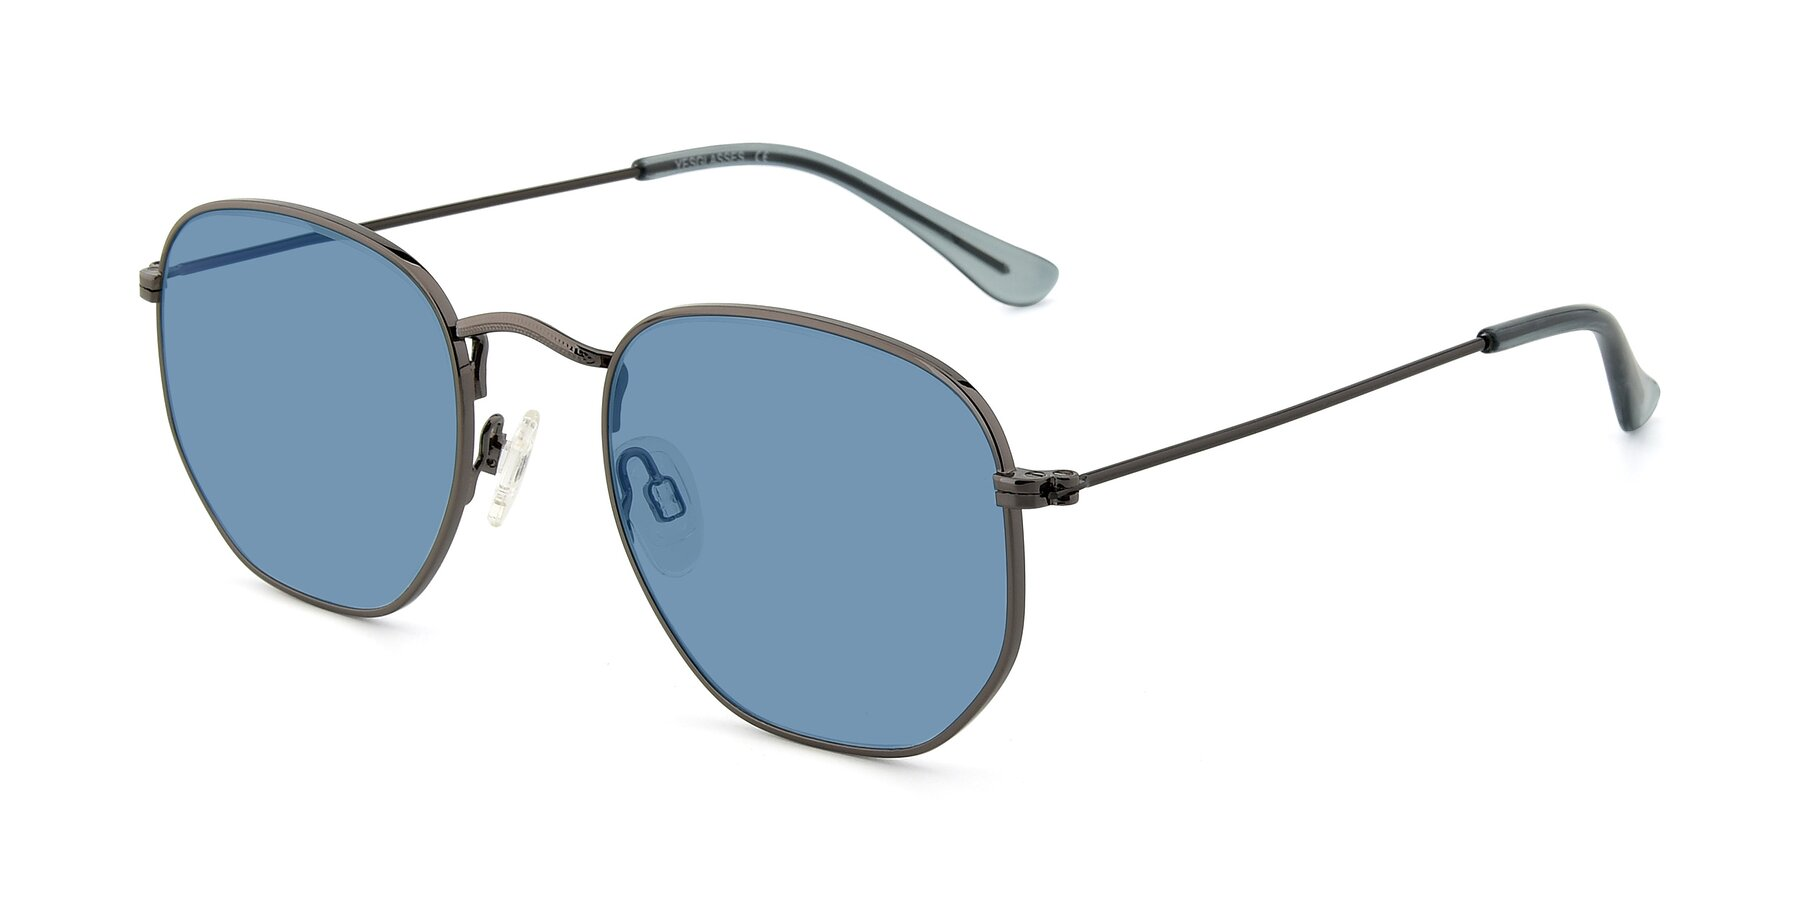 Angle of SSR1944 in Grey with Medium Blue Tinted Lenses